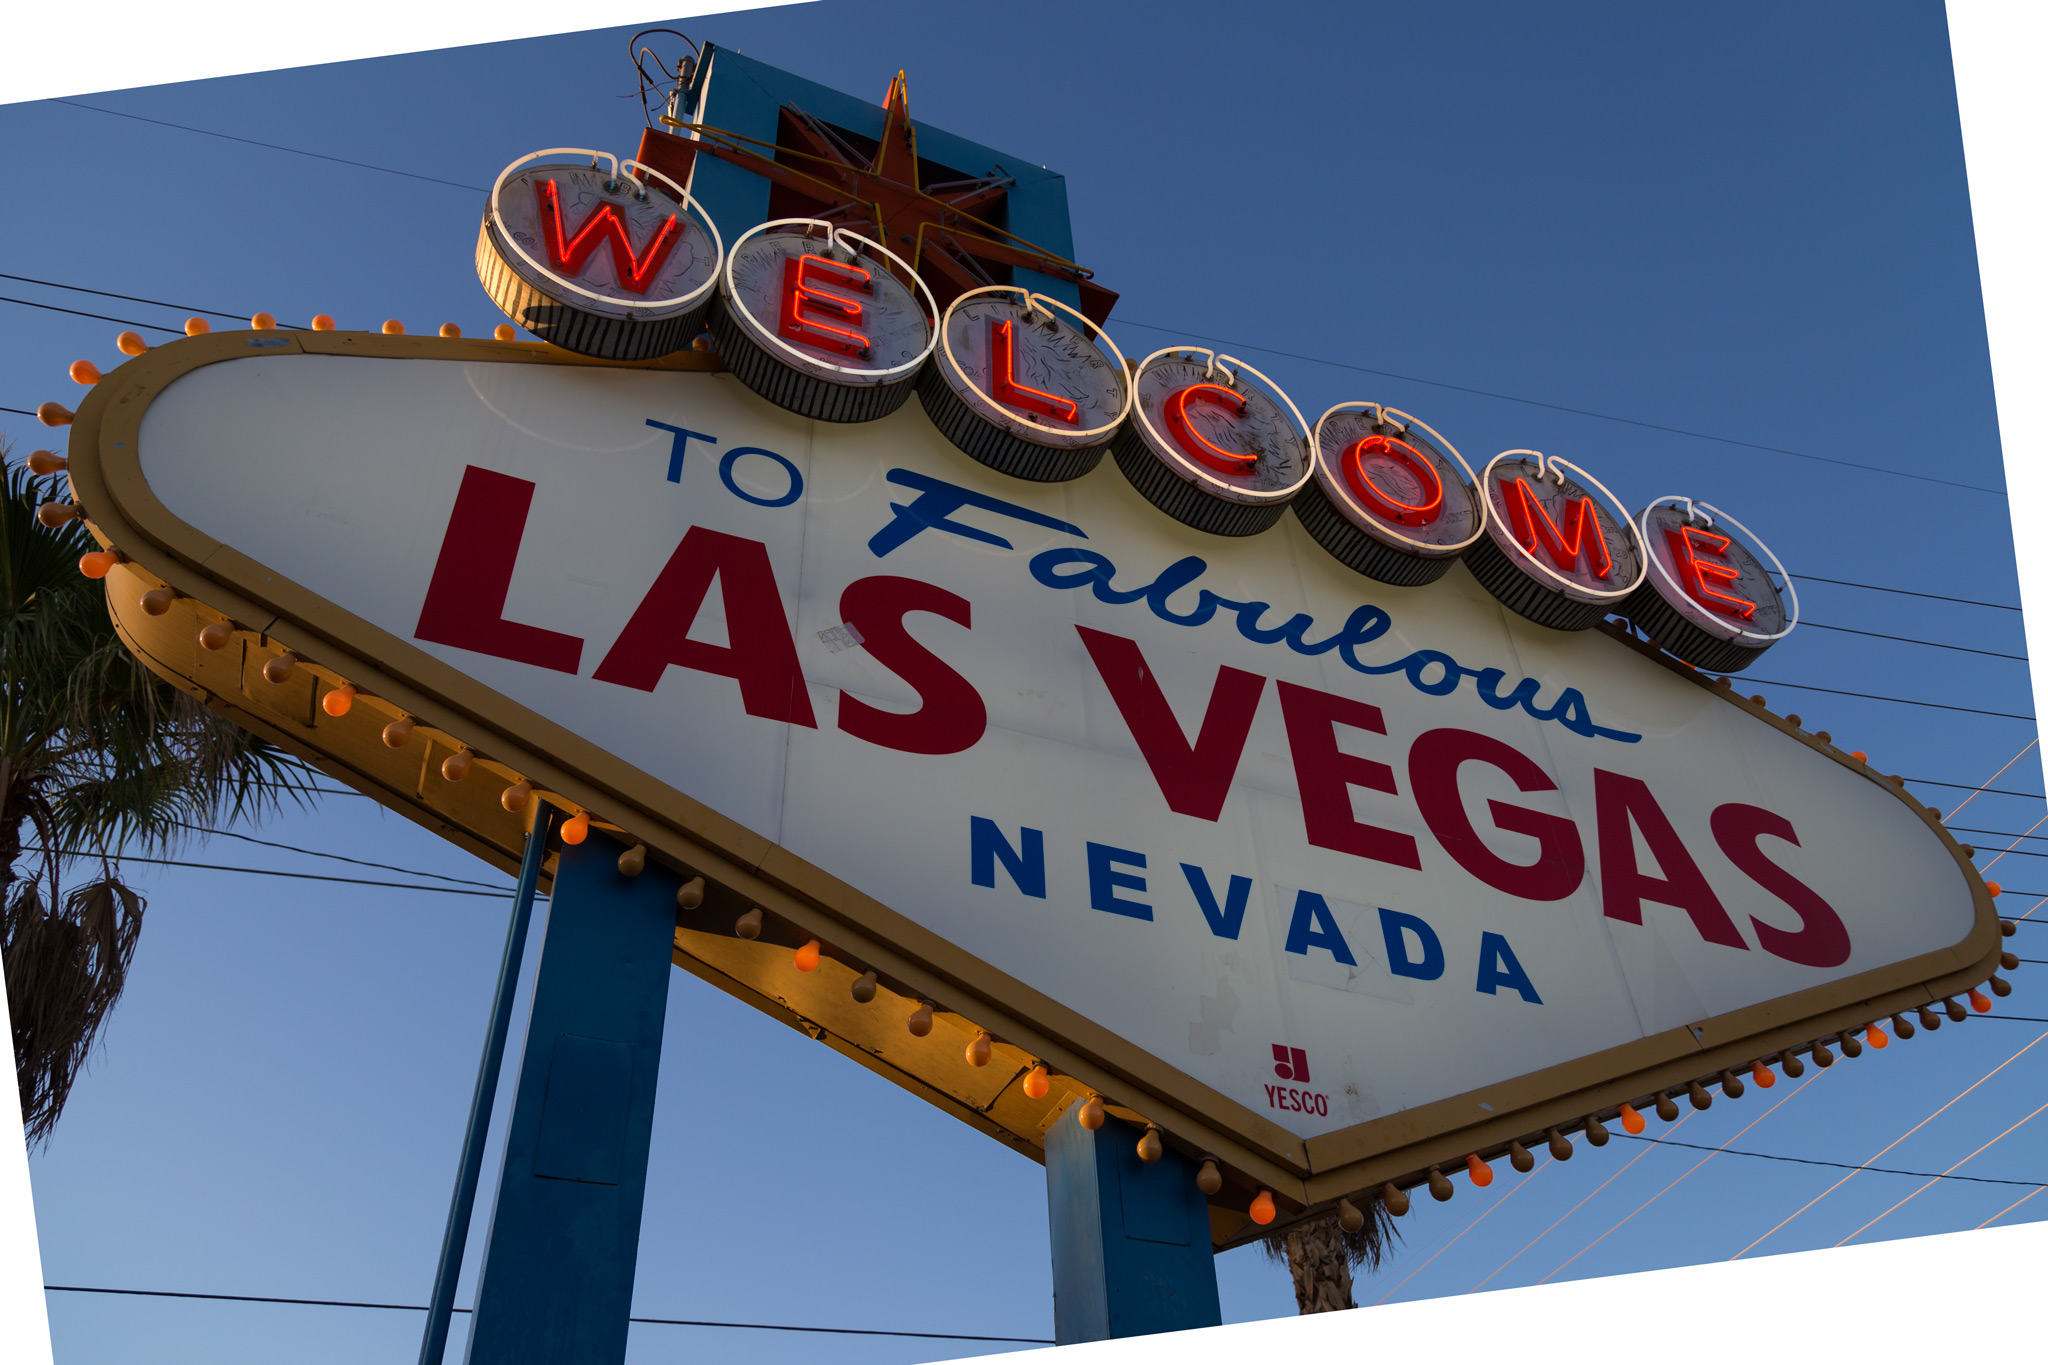 First up is the iconic Las Vegas sign.  As you can see in the before photo there are a number of power lines that run directly behind the sign. Additionally, if you look closely the sign is very dirty and looks to have been patch several times.